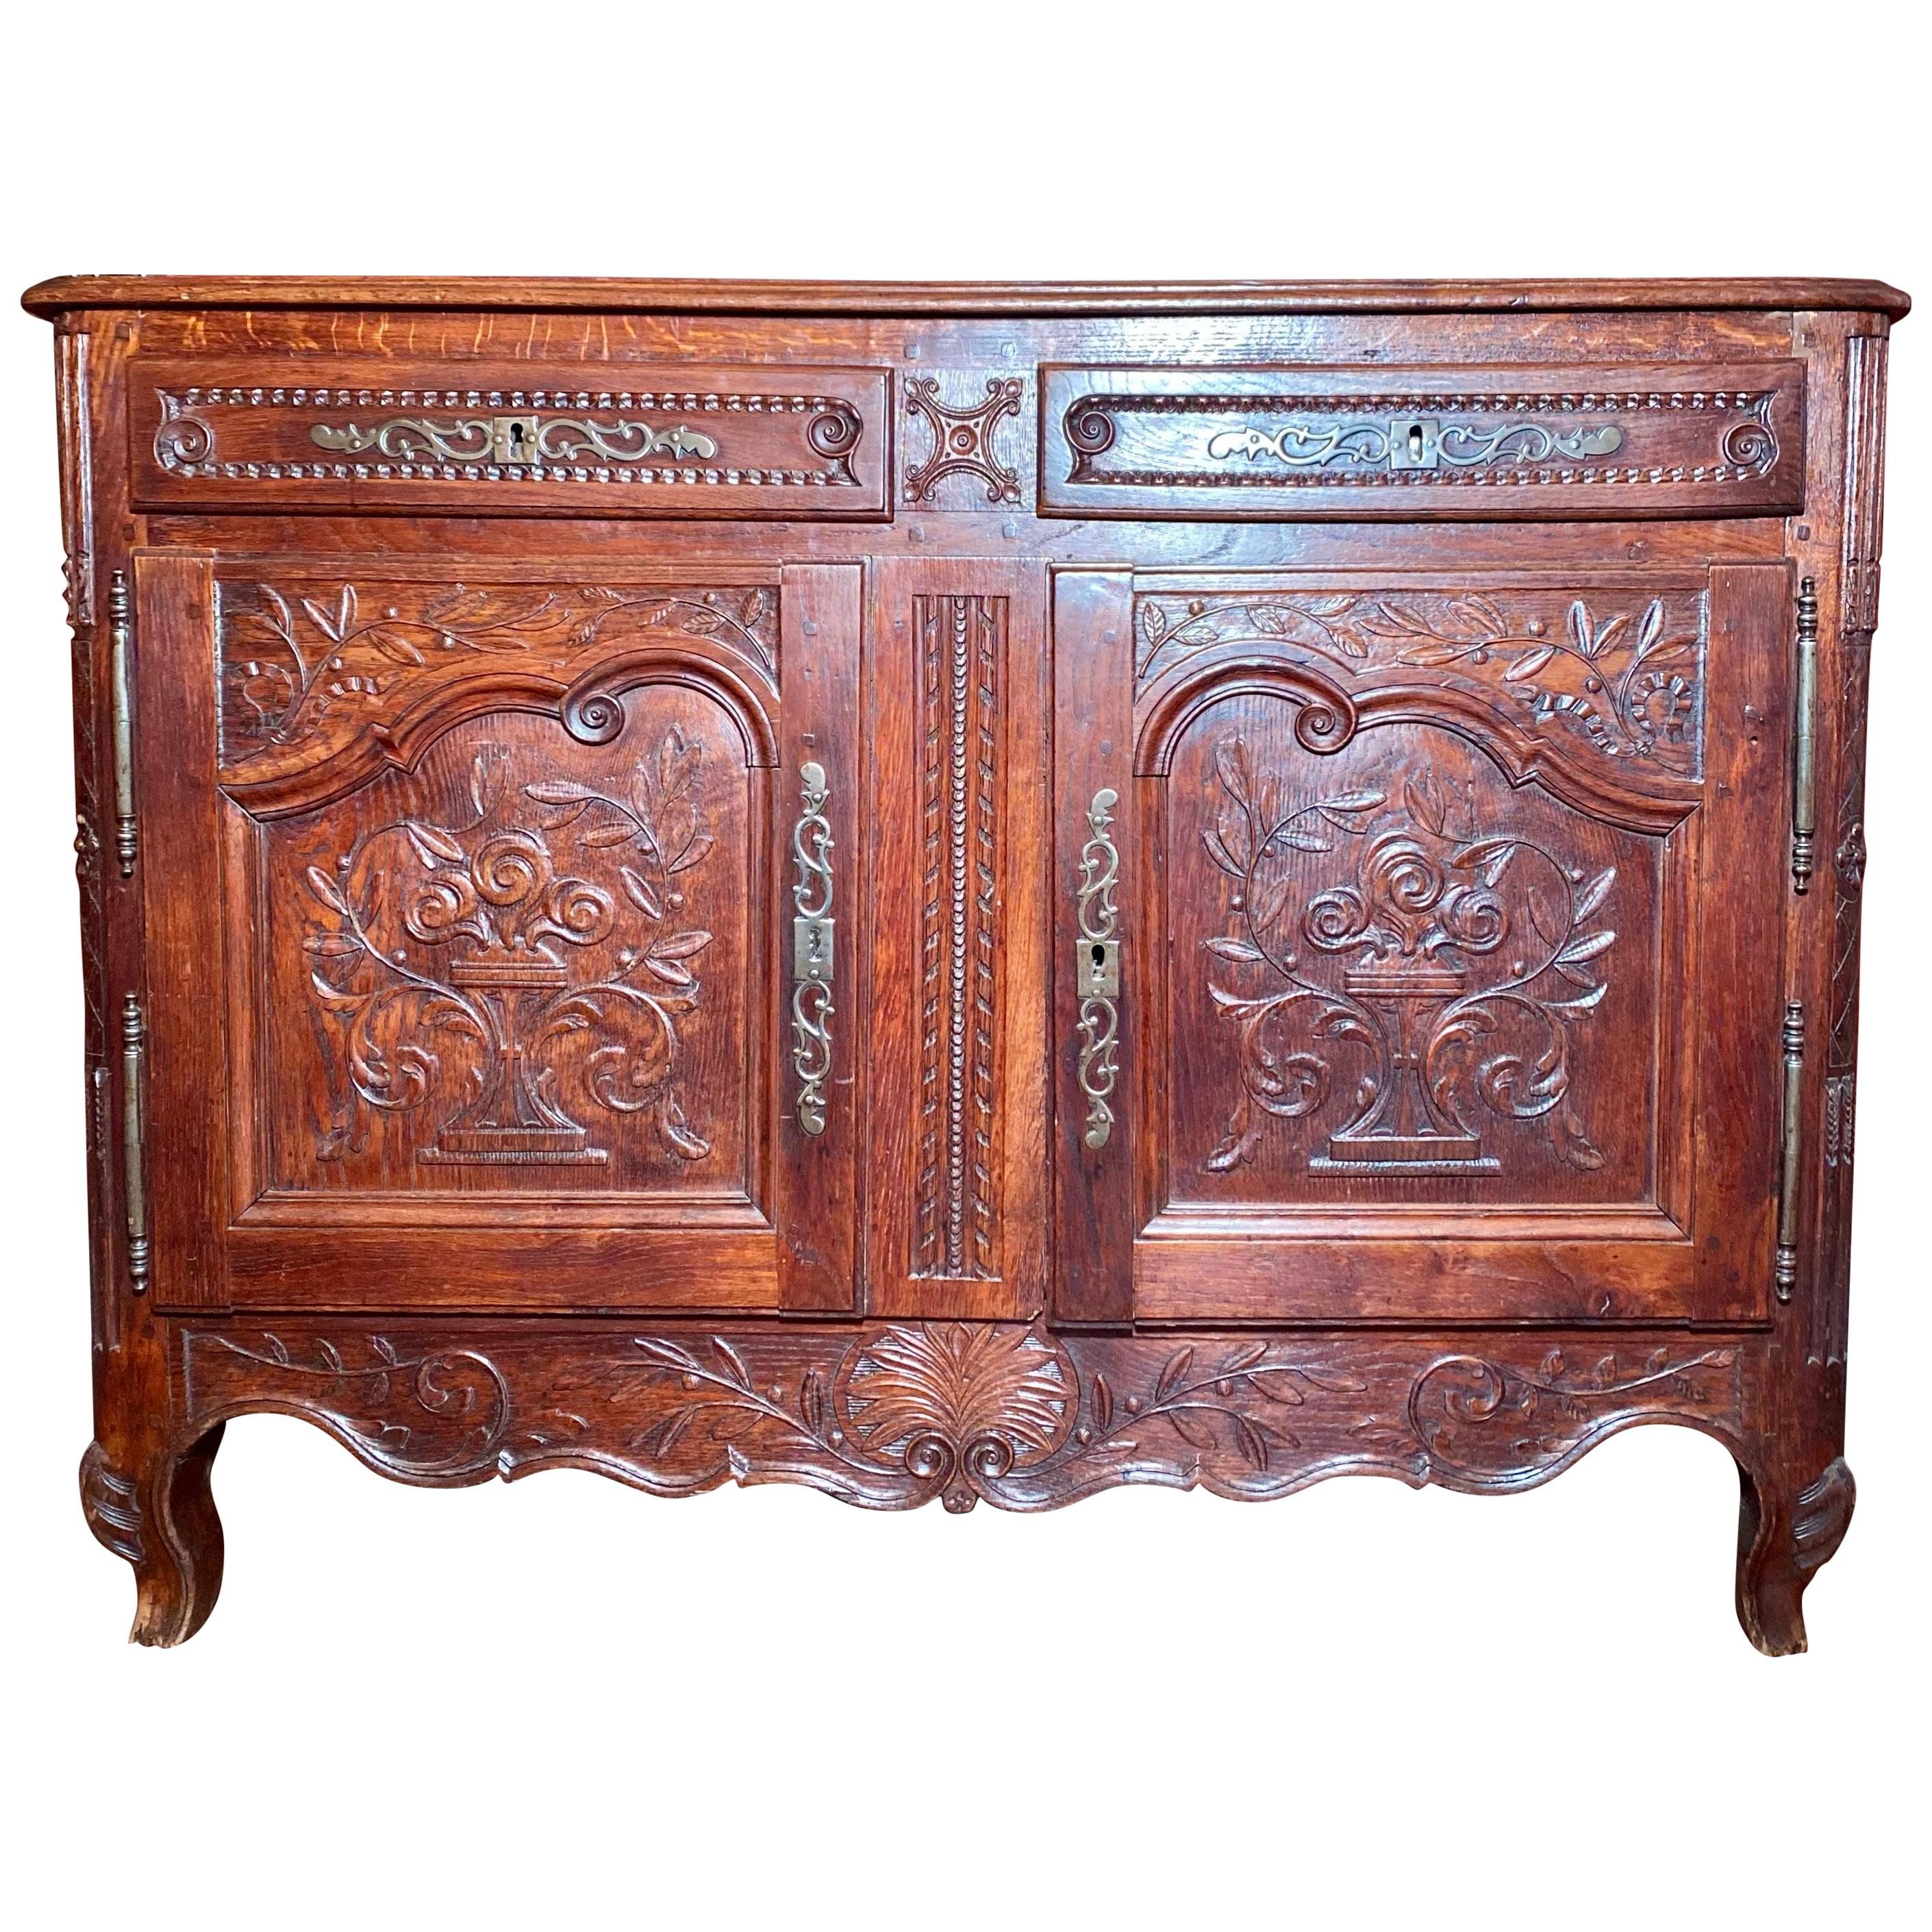 Antique 19th Century French Provincial Fruitwood Buffet.